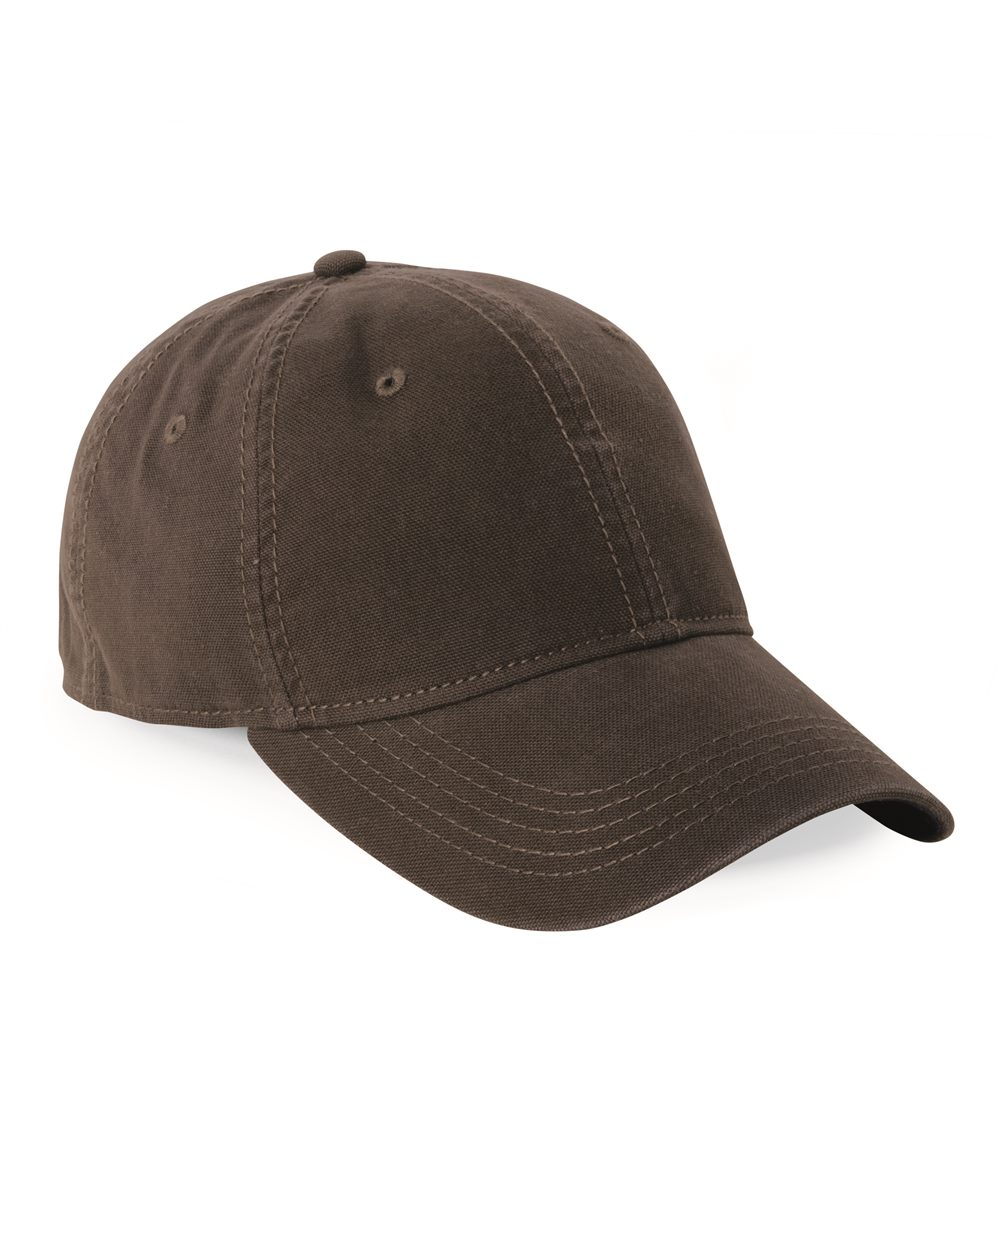 DRI DUCK 3356 - Highland Canvas Cap